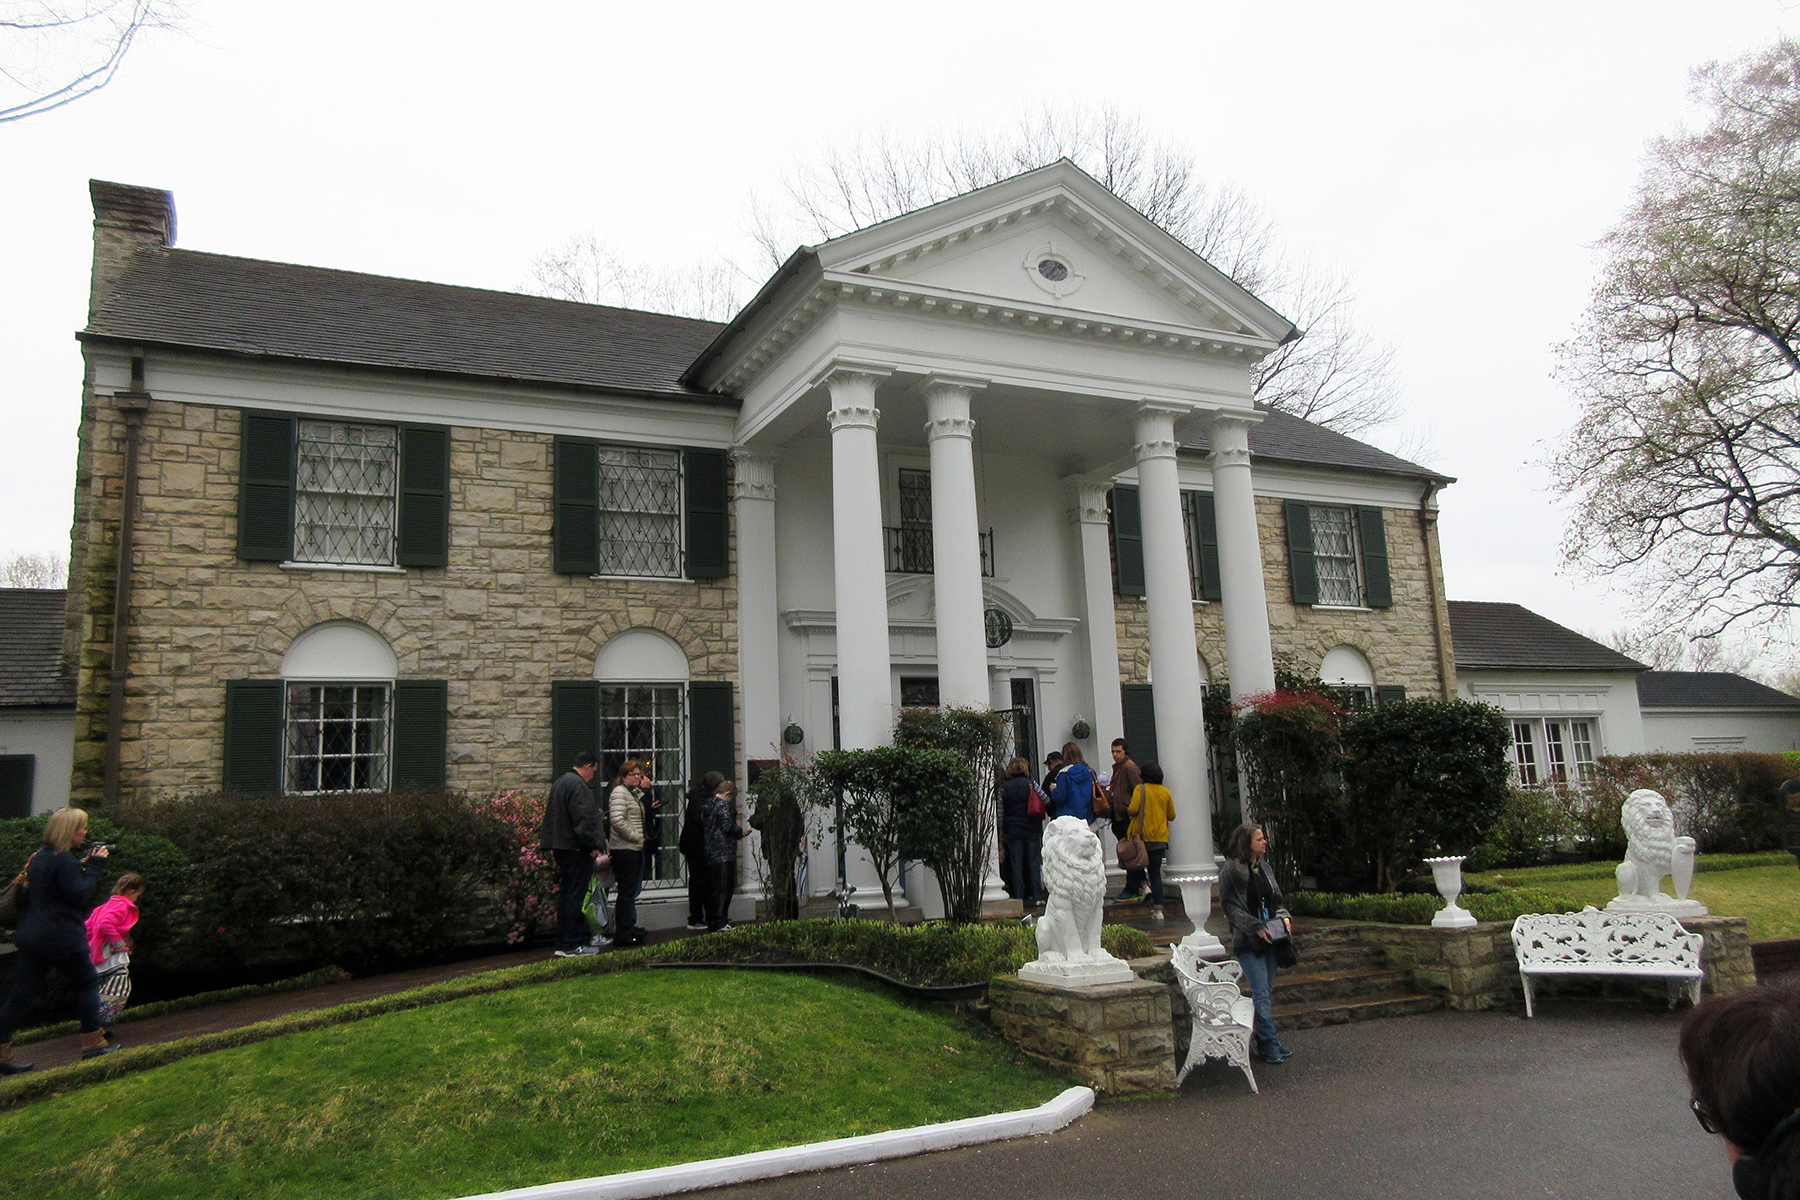 This photo shows visitors getting ready to tour Graceland in Memphis, Tenn. Elvis Presley bought the mansion _ which is small by 21st century standards _ in 1957 and lived there until his death 20 years laterTravel-2 Days in , Memphis, USA - 13 Mar 2017